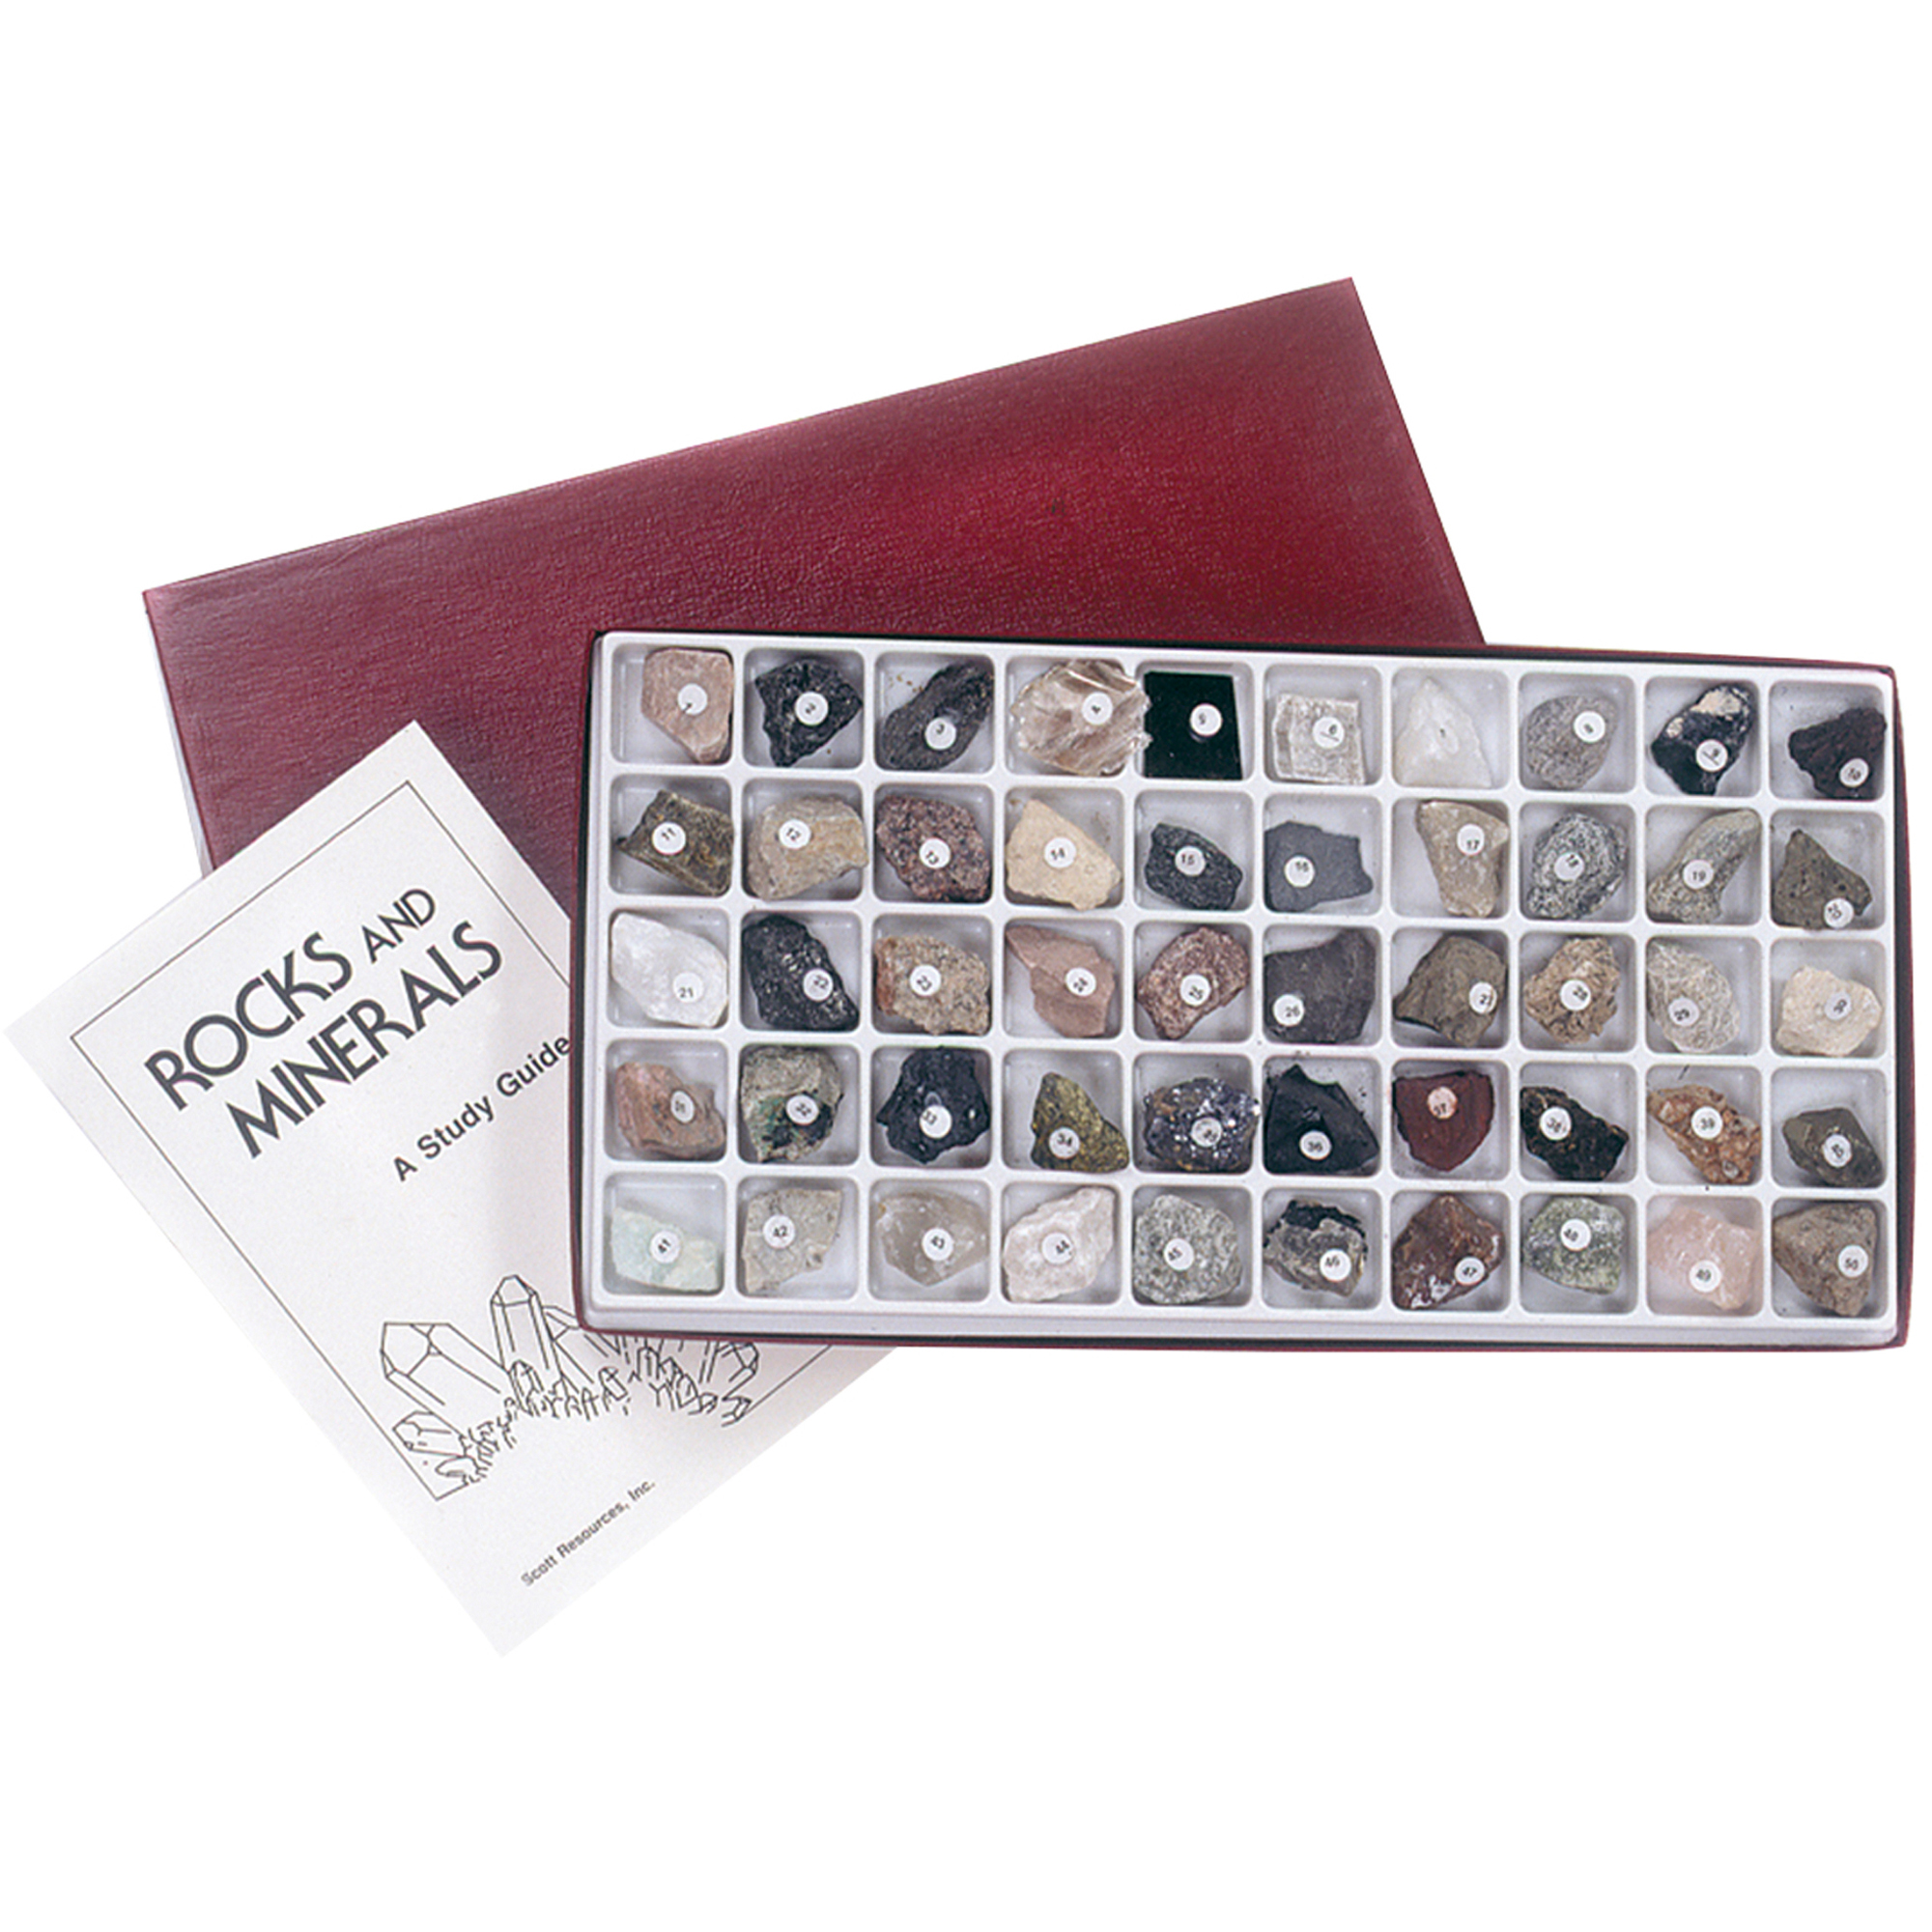 American Educational Products Classroom Collection of Rocks and Minerals